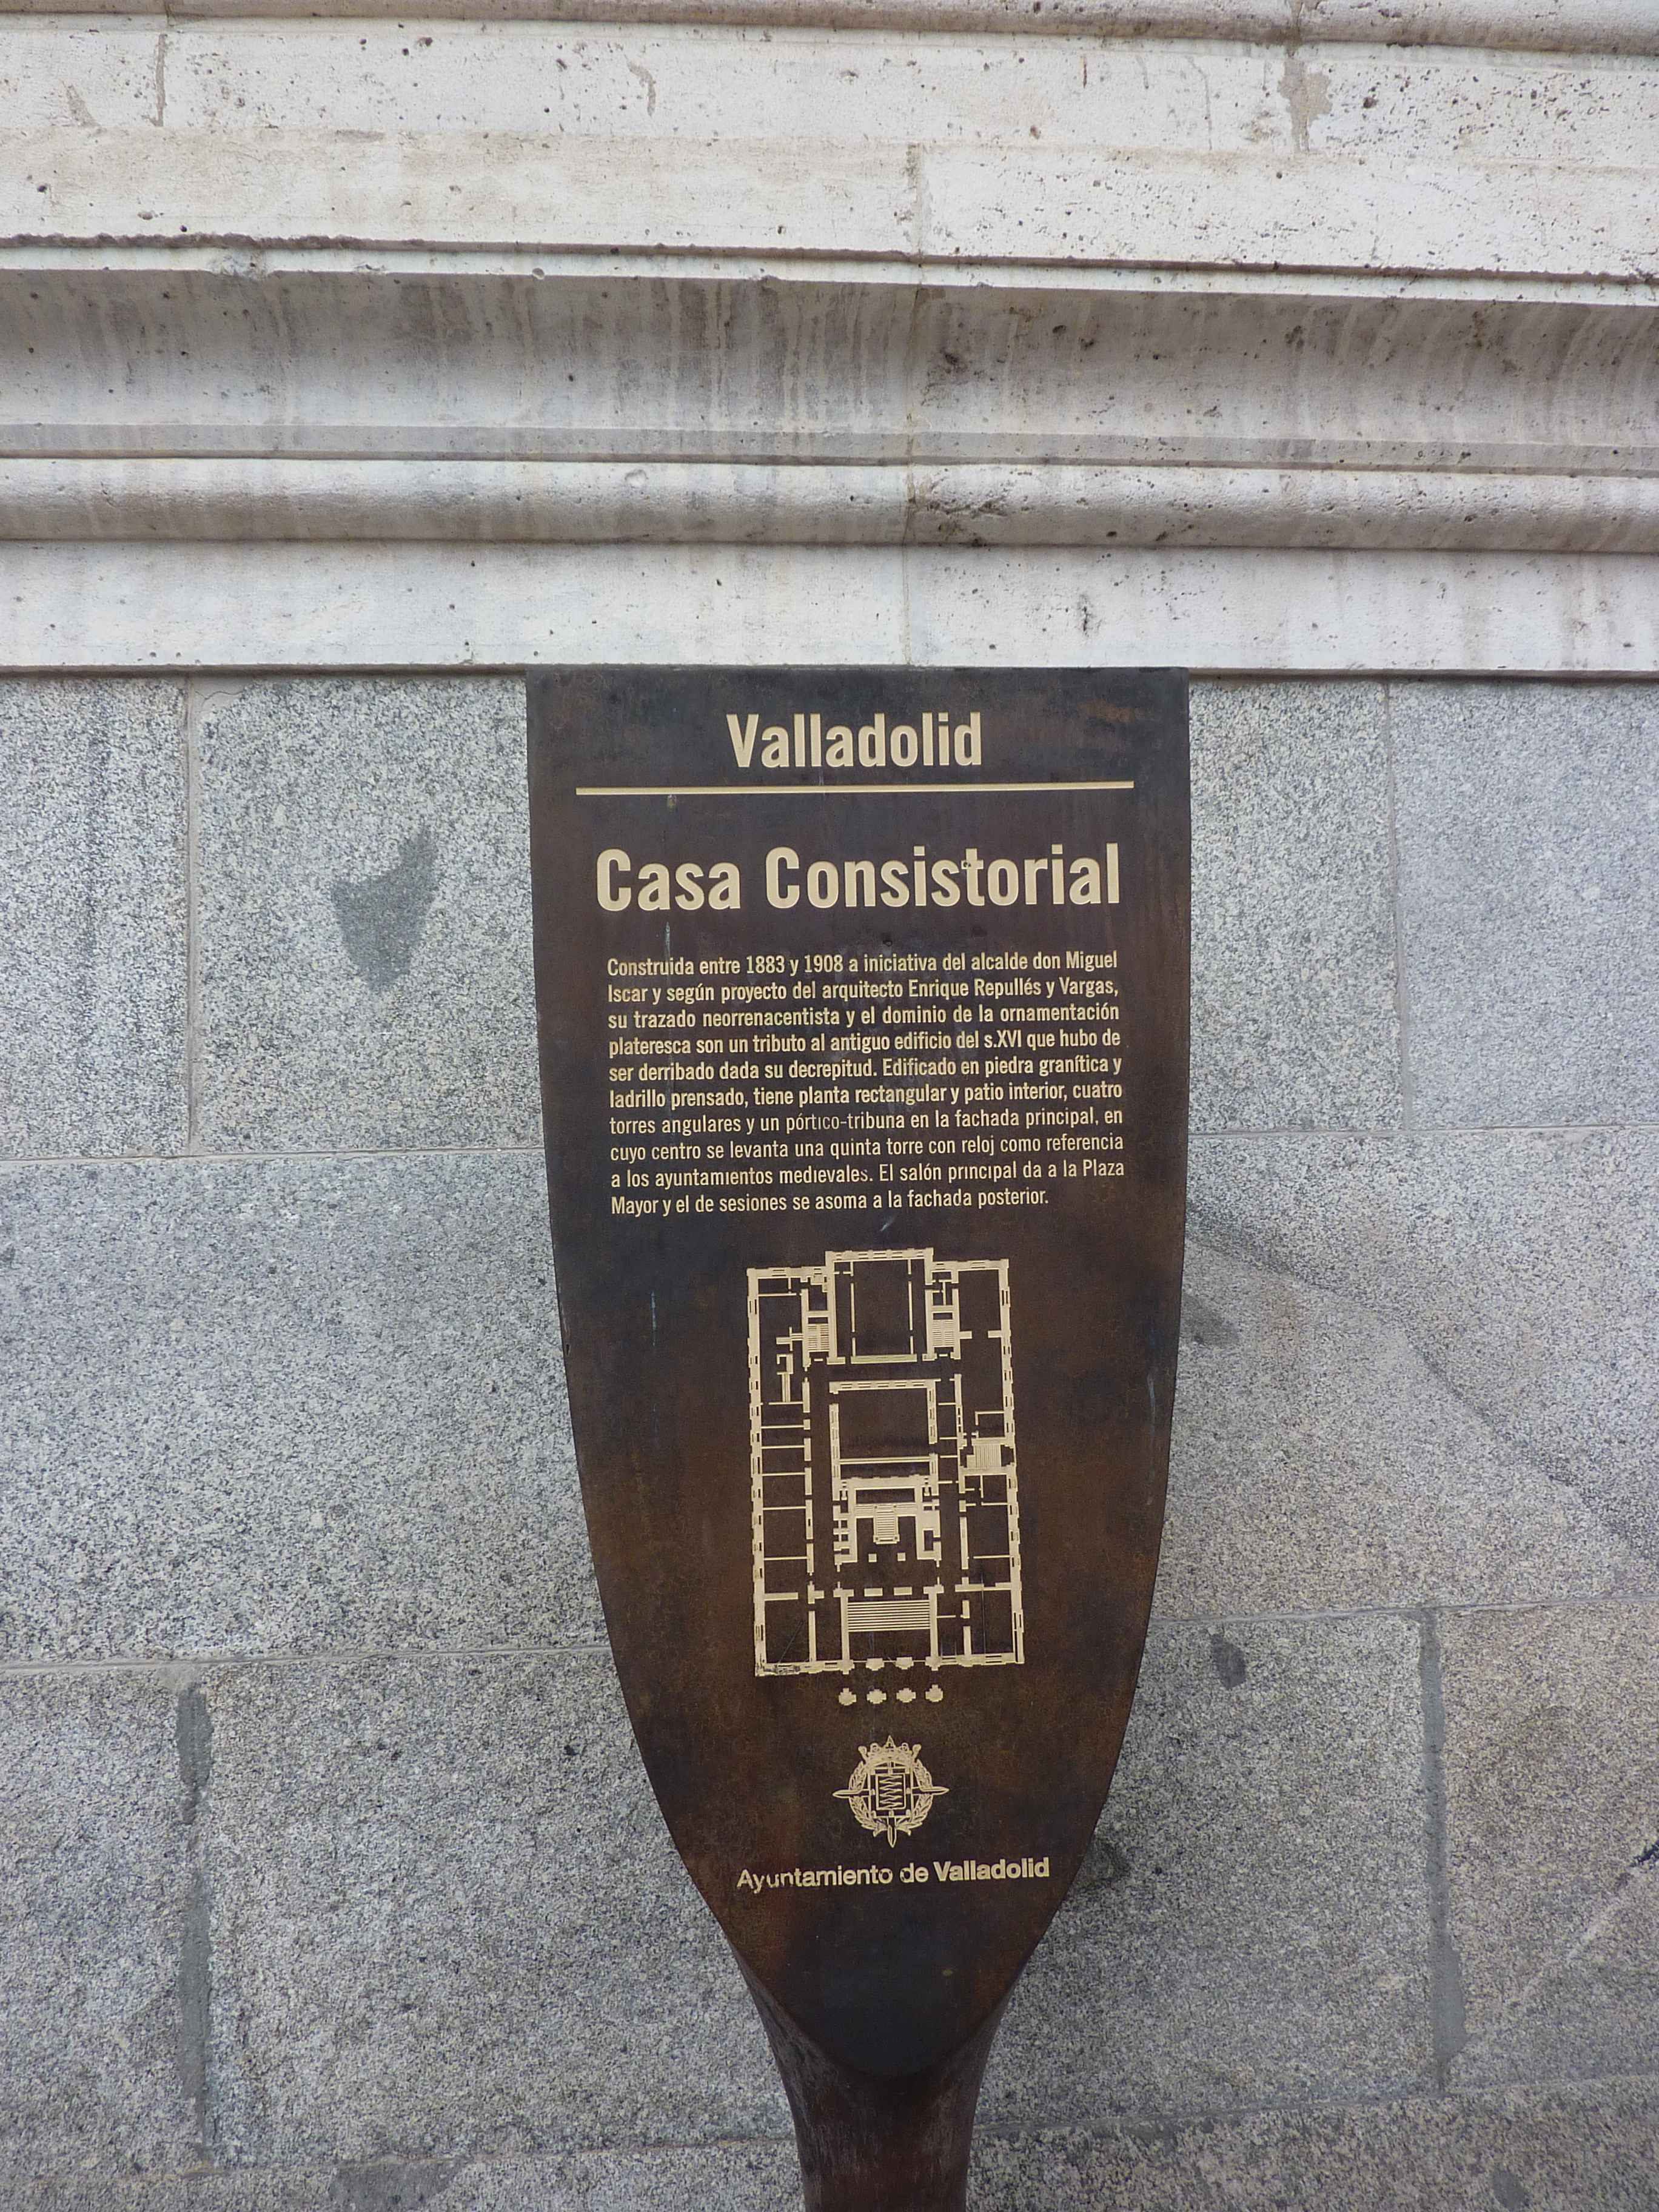 Casa Consistorial Sur La Plaza Mayor en Images